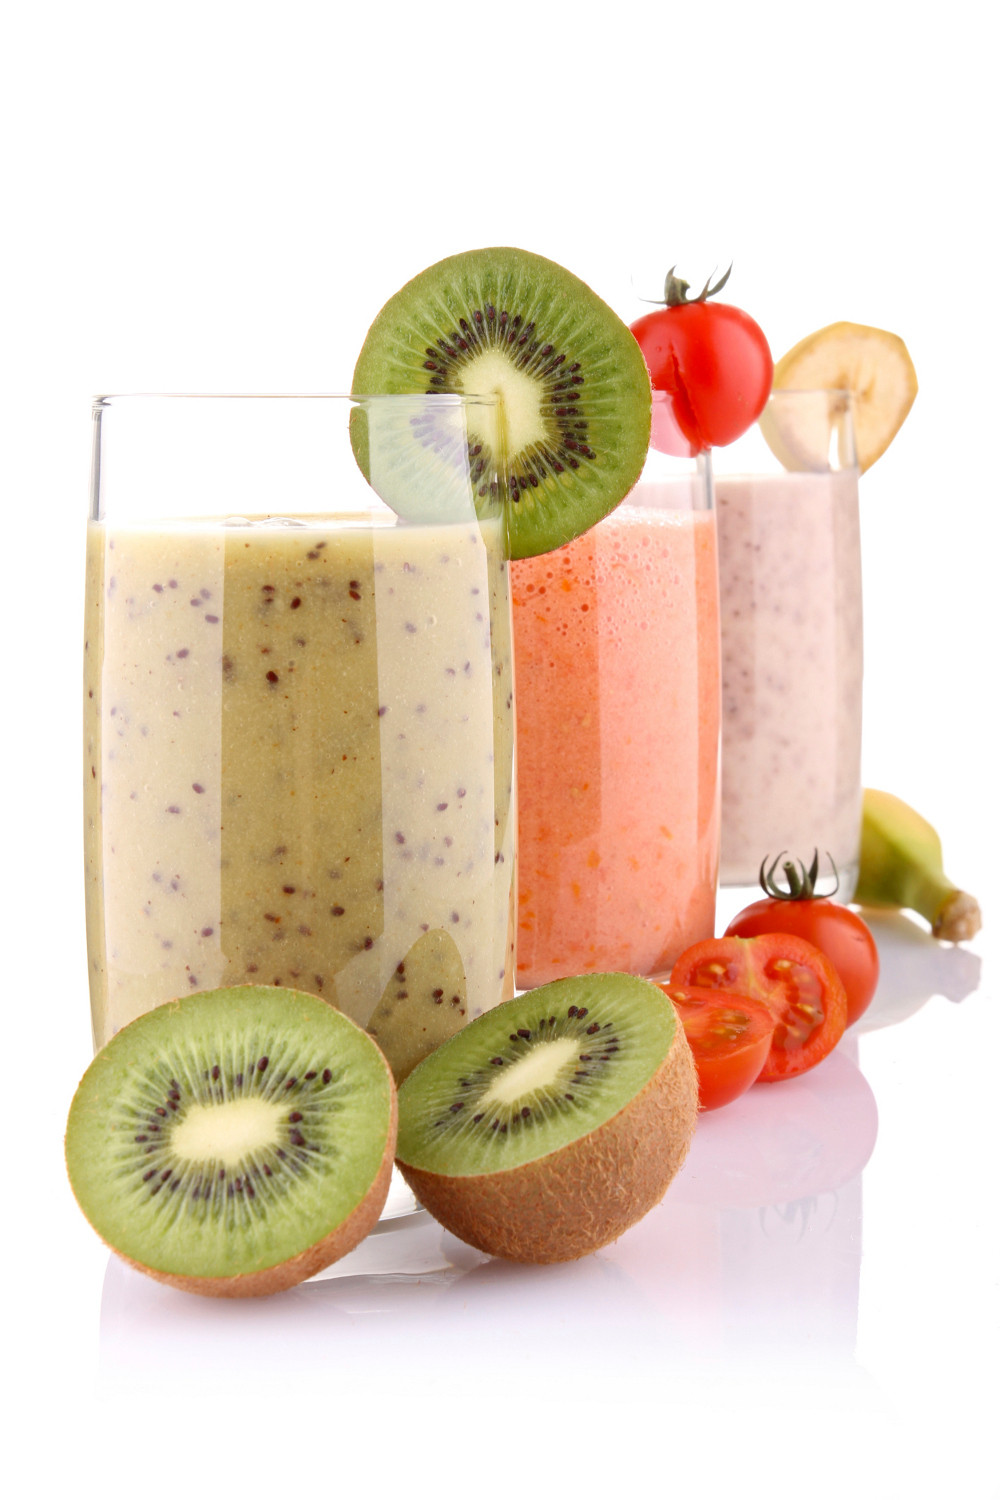 Great Tasting Healthy Smoothies  3 Must Try Antioxidant Smoothies A Pinch of This a Dash